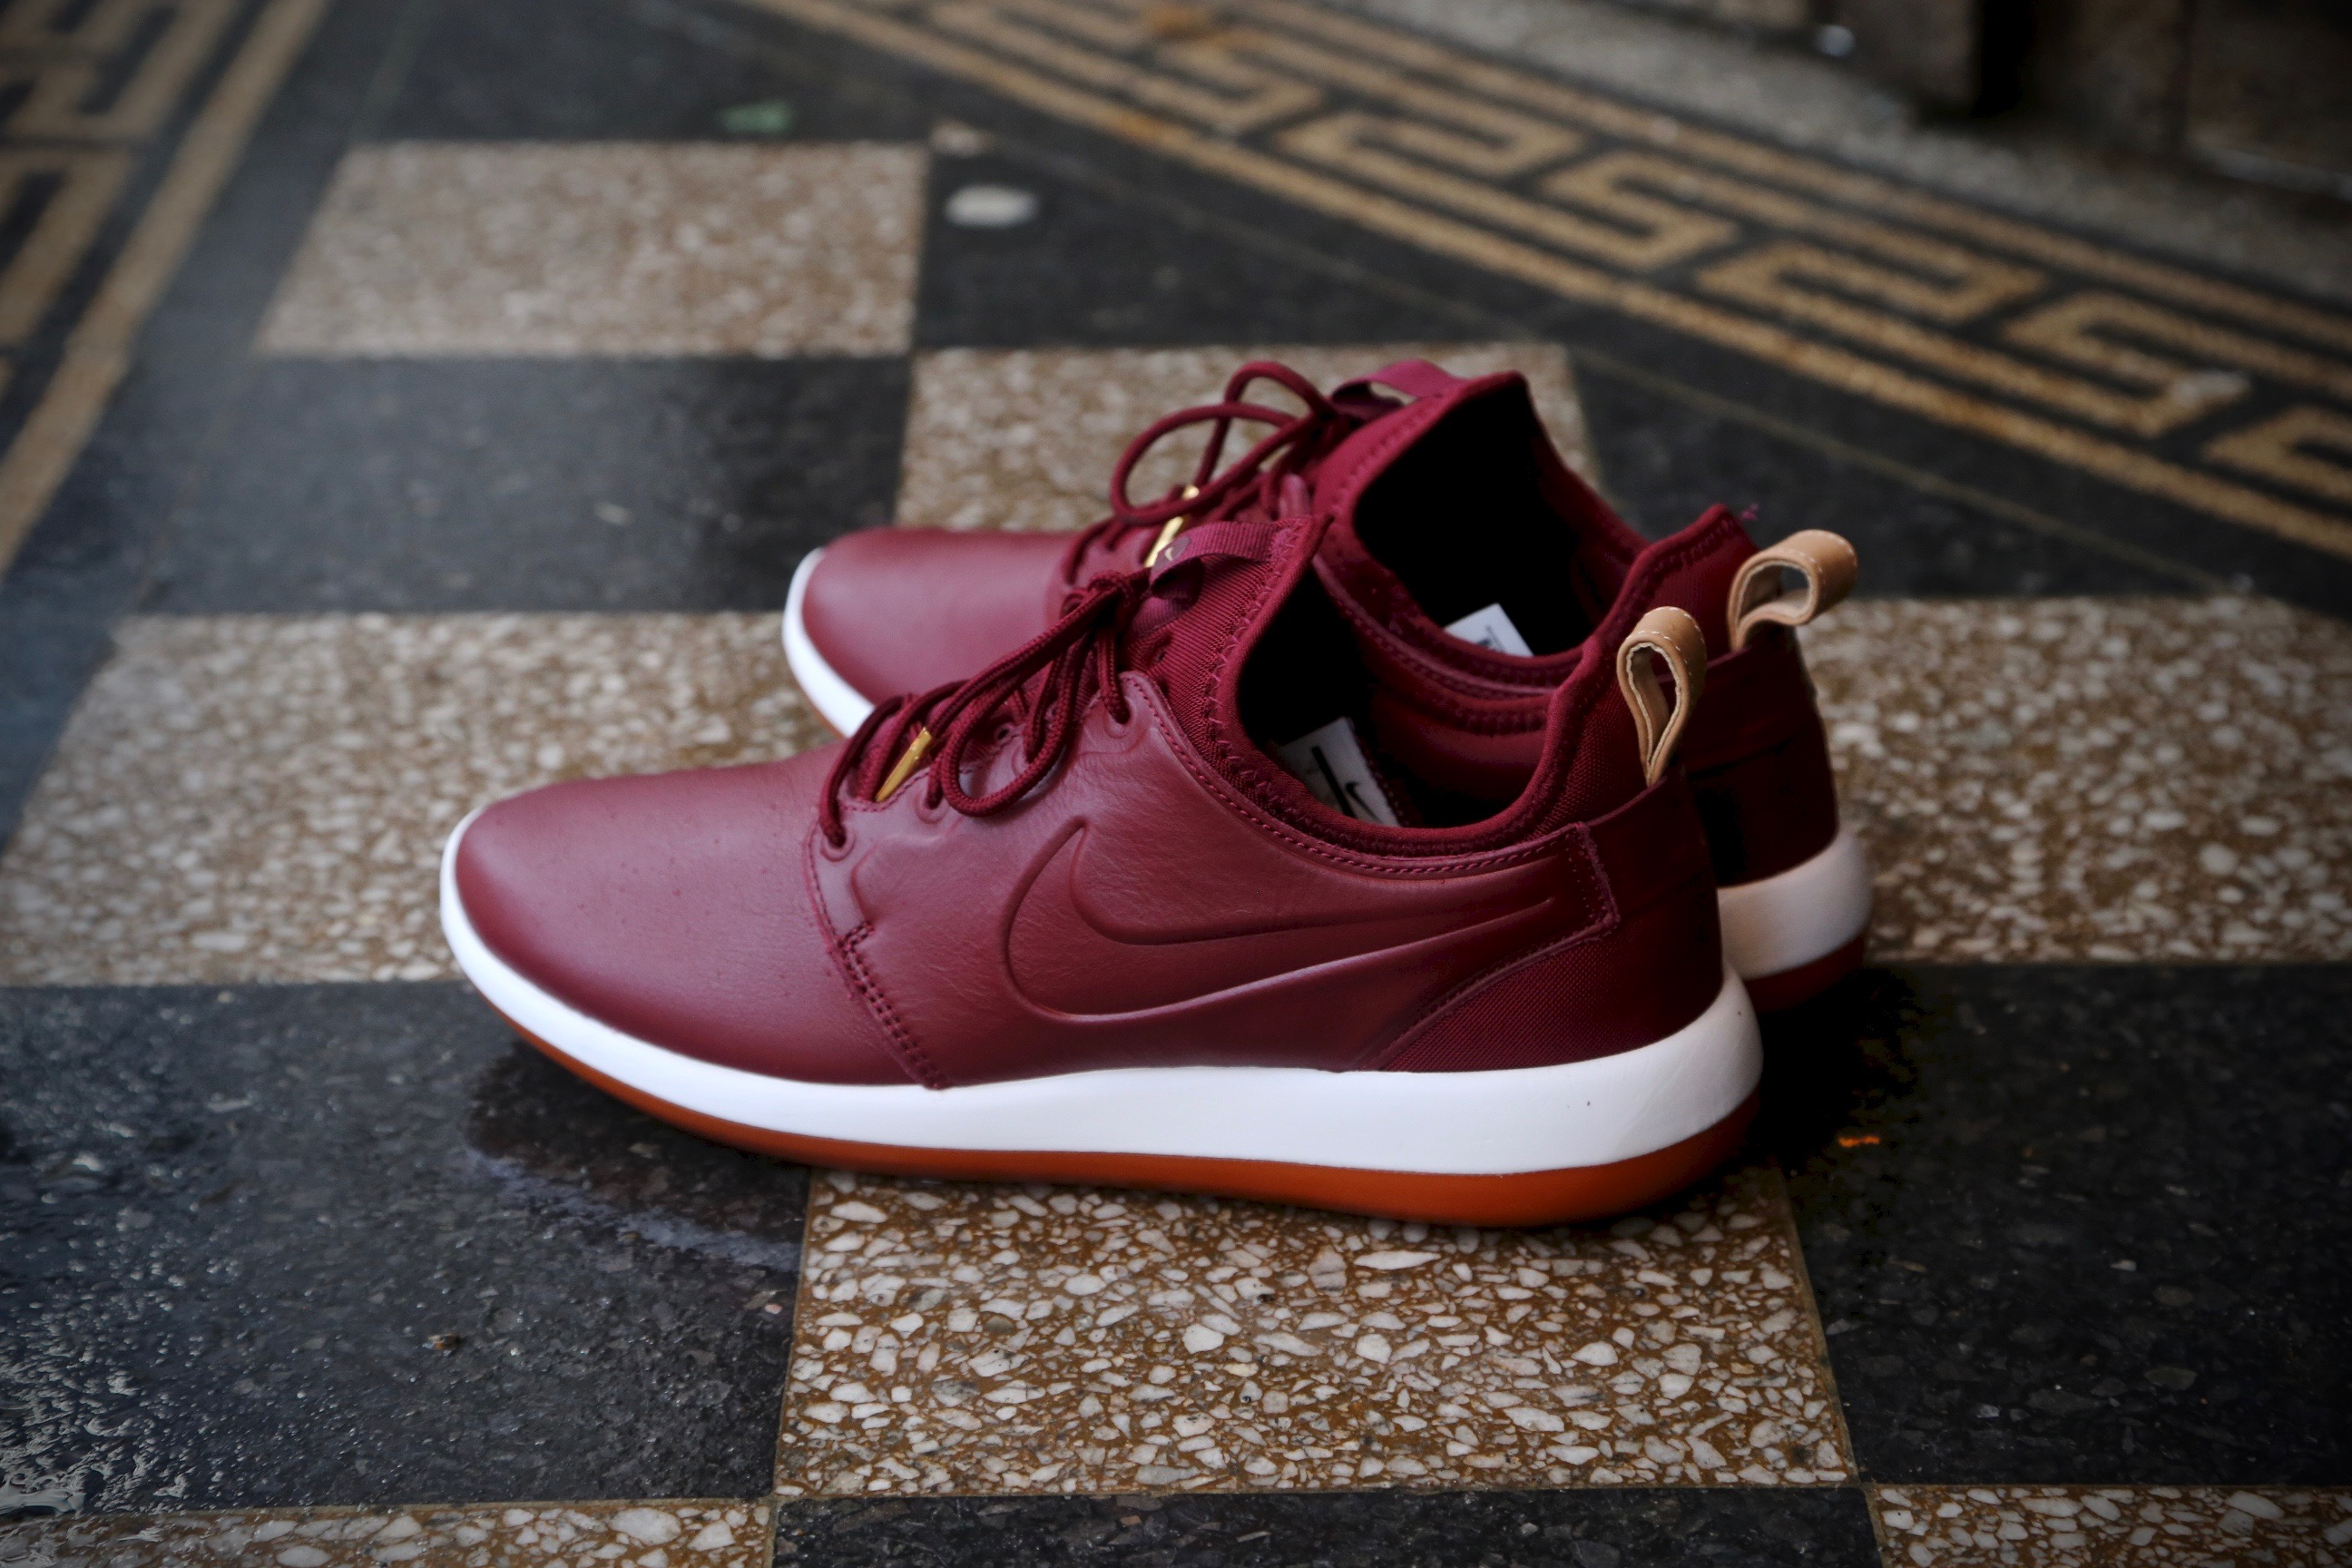 san francisco 85076 6a820 ... Nike Roshe Two Leather Premium b60p4680 · b60p4682 · b60p4685 ·  b60p4688 .